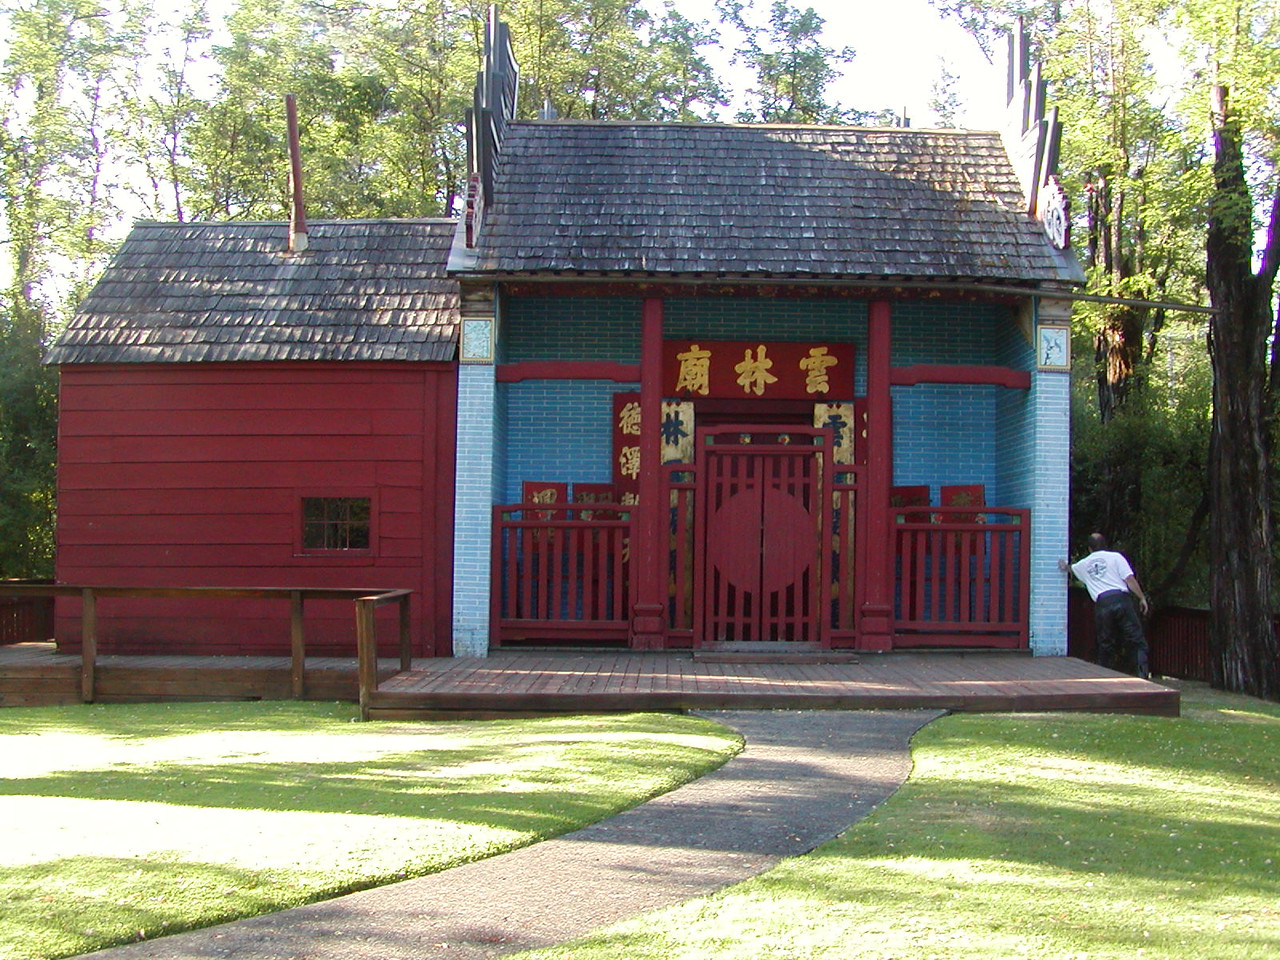 Joss House: Mark holding up building